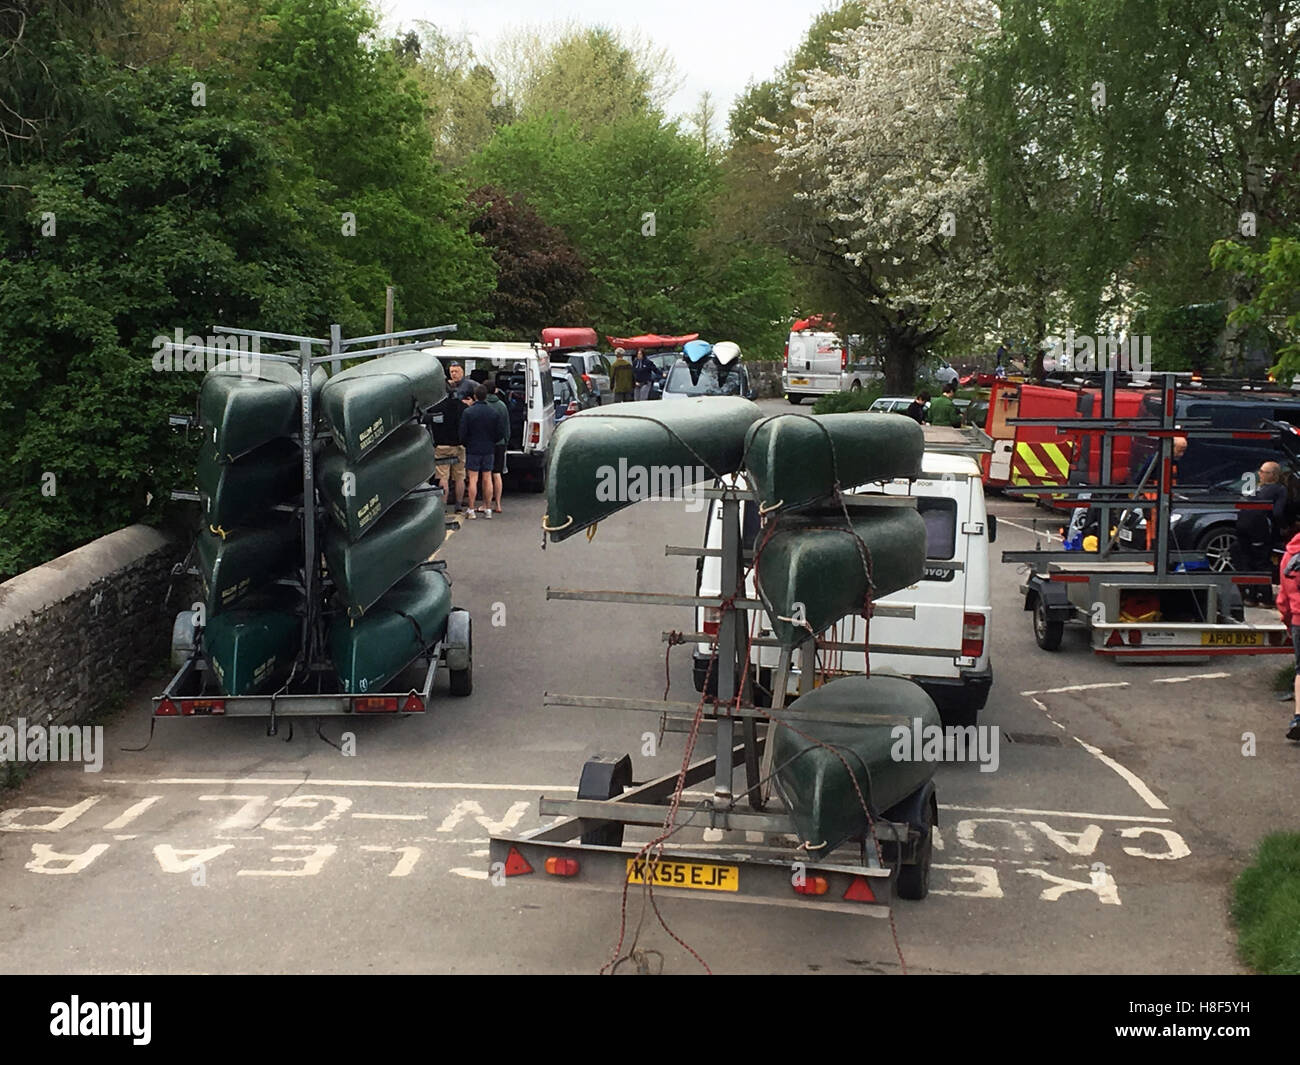 Canoe hire companies queue up to unload in a riverside car park at Glasbury Powys Wales UK - Stock Image